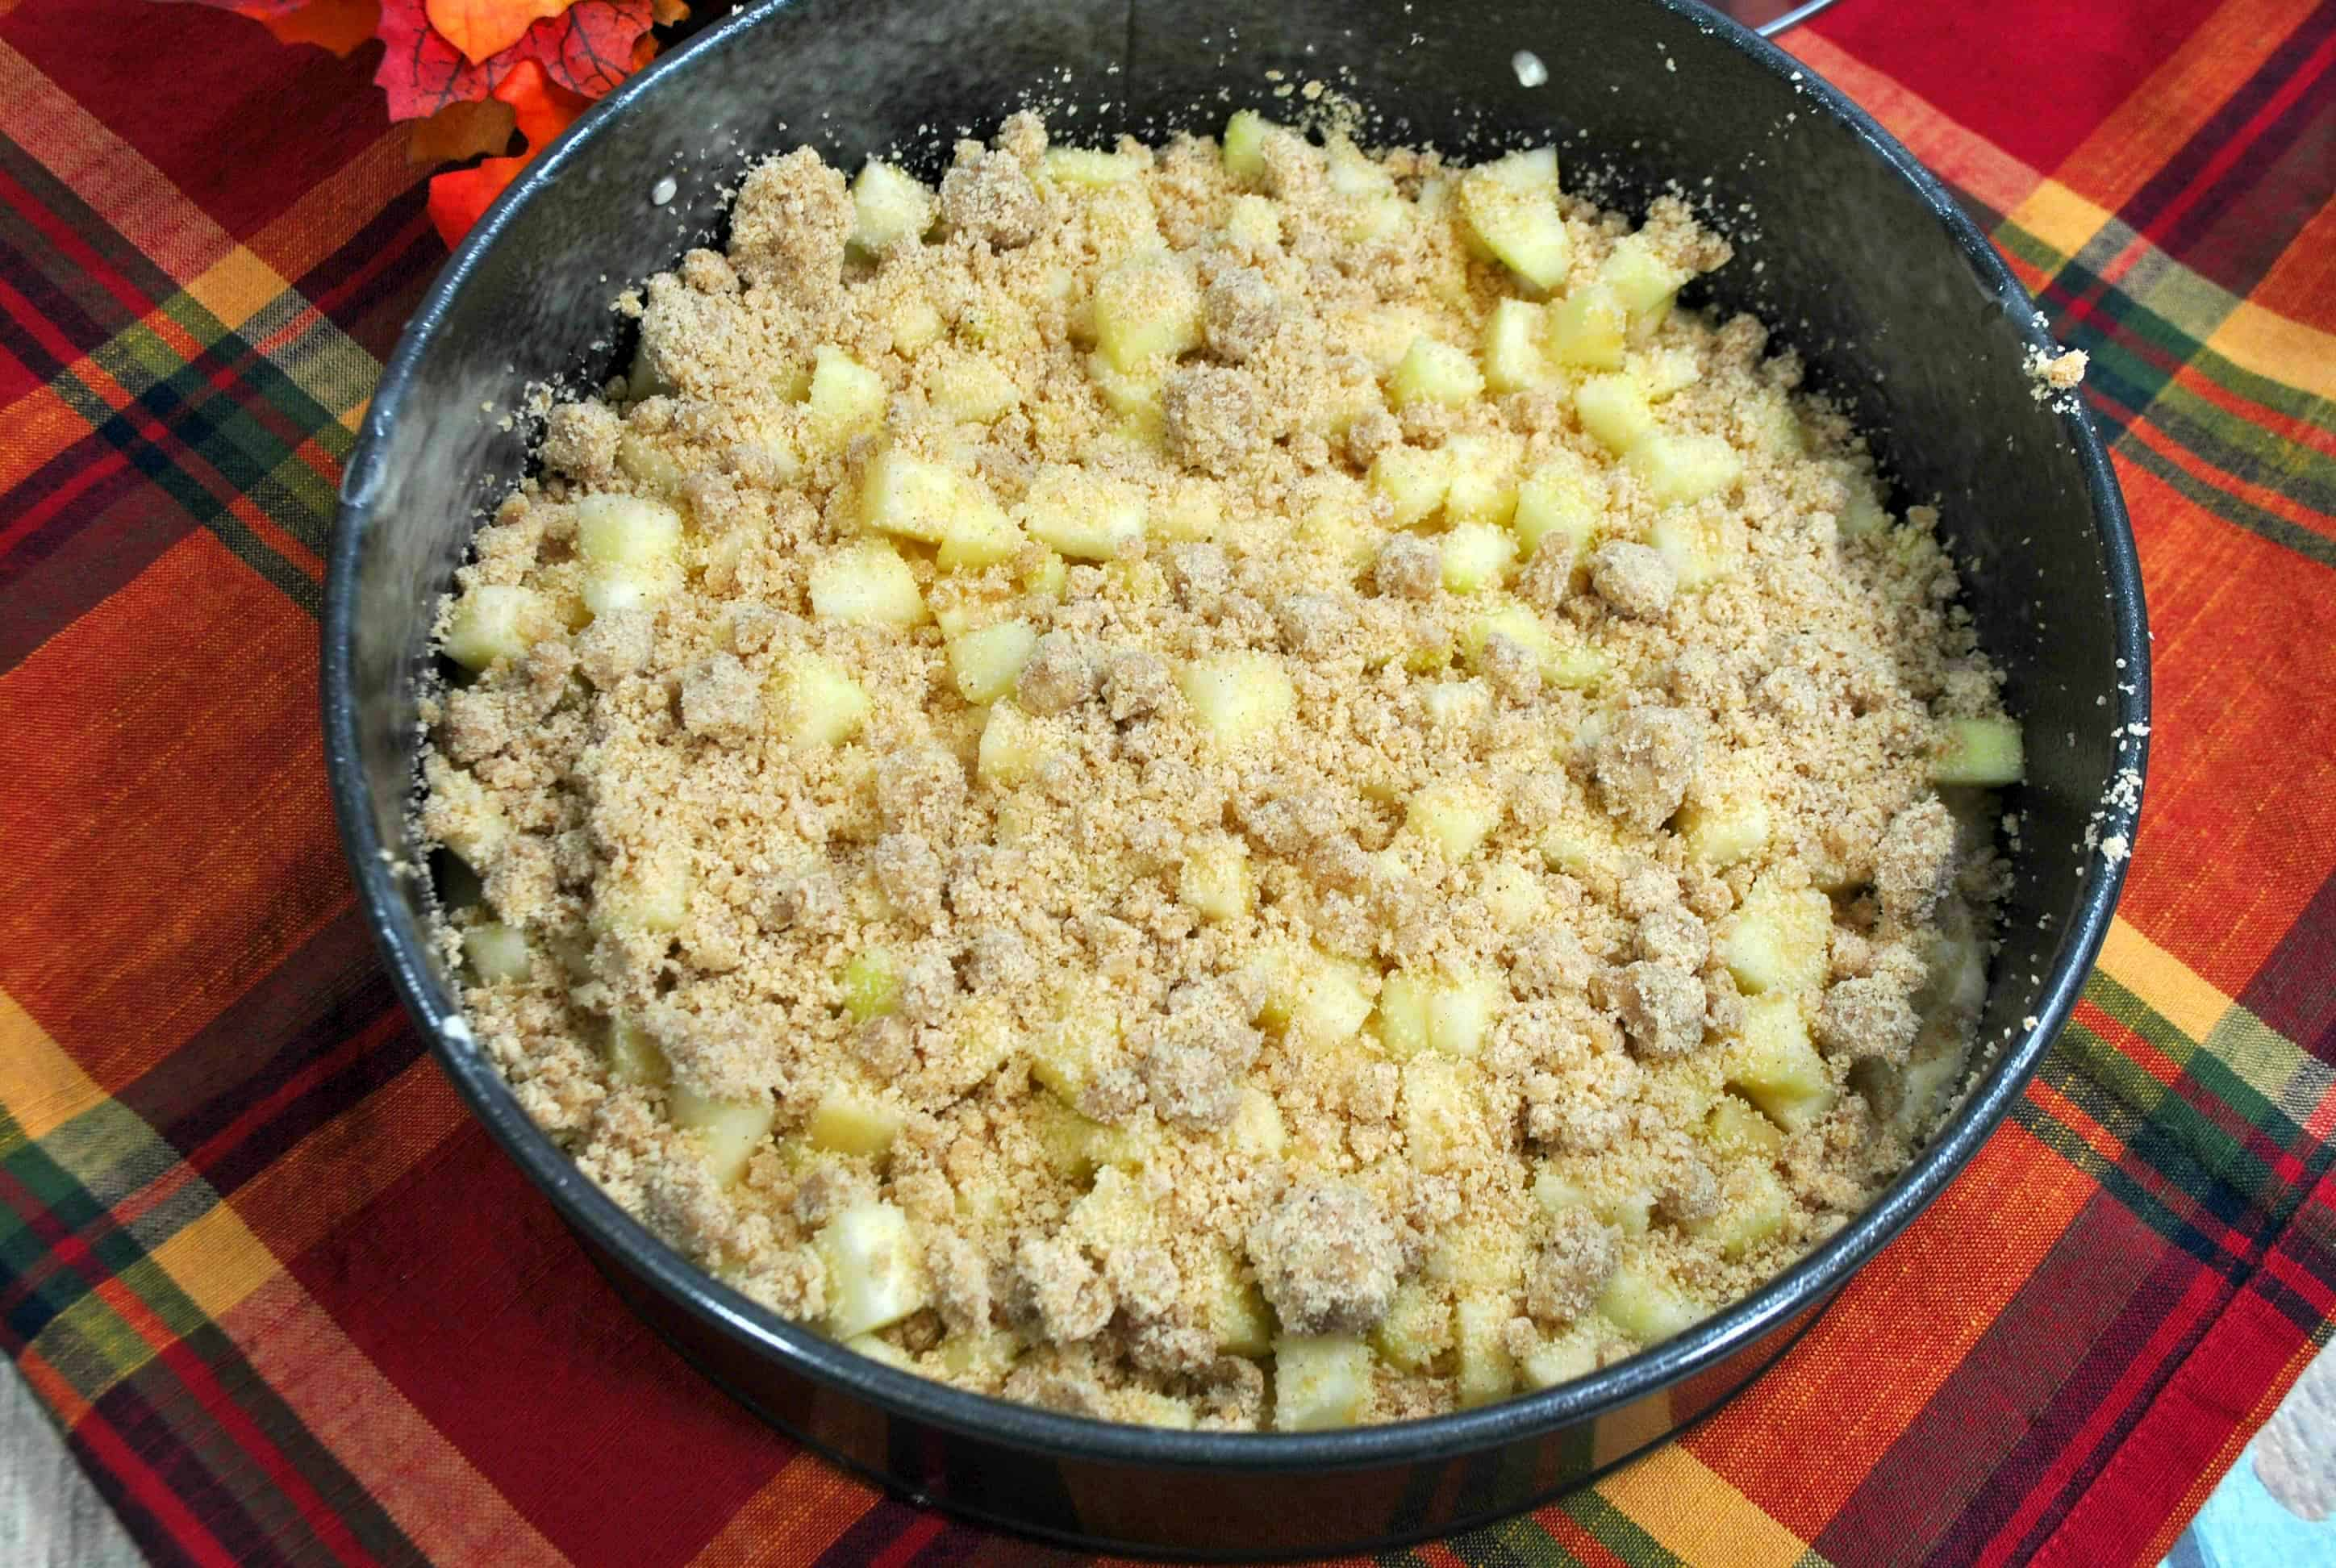 apple crumb filling on top of cake batter in a springform pan